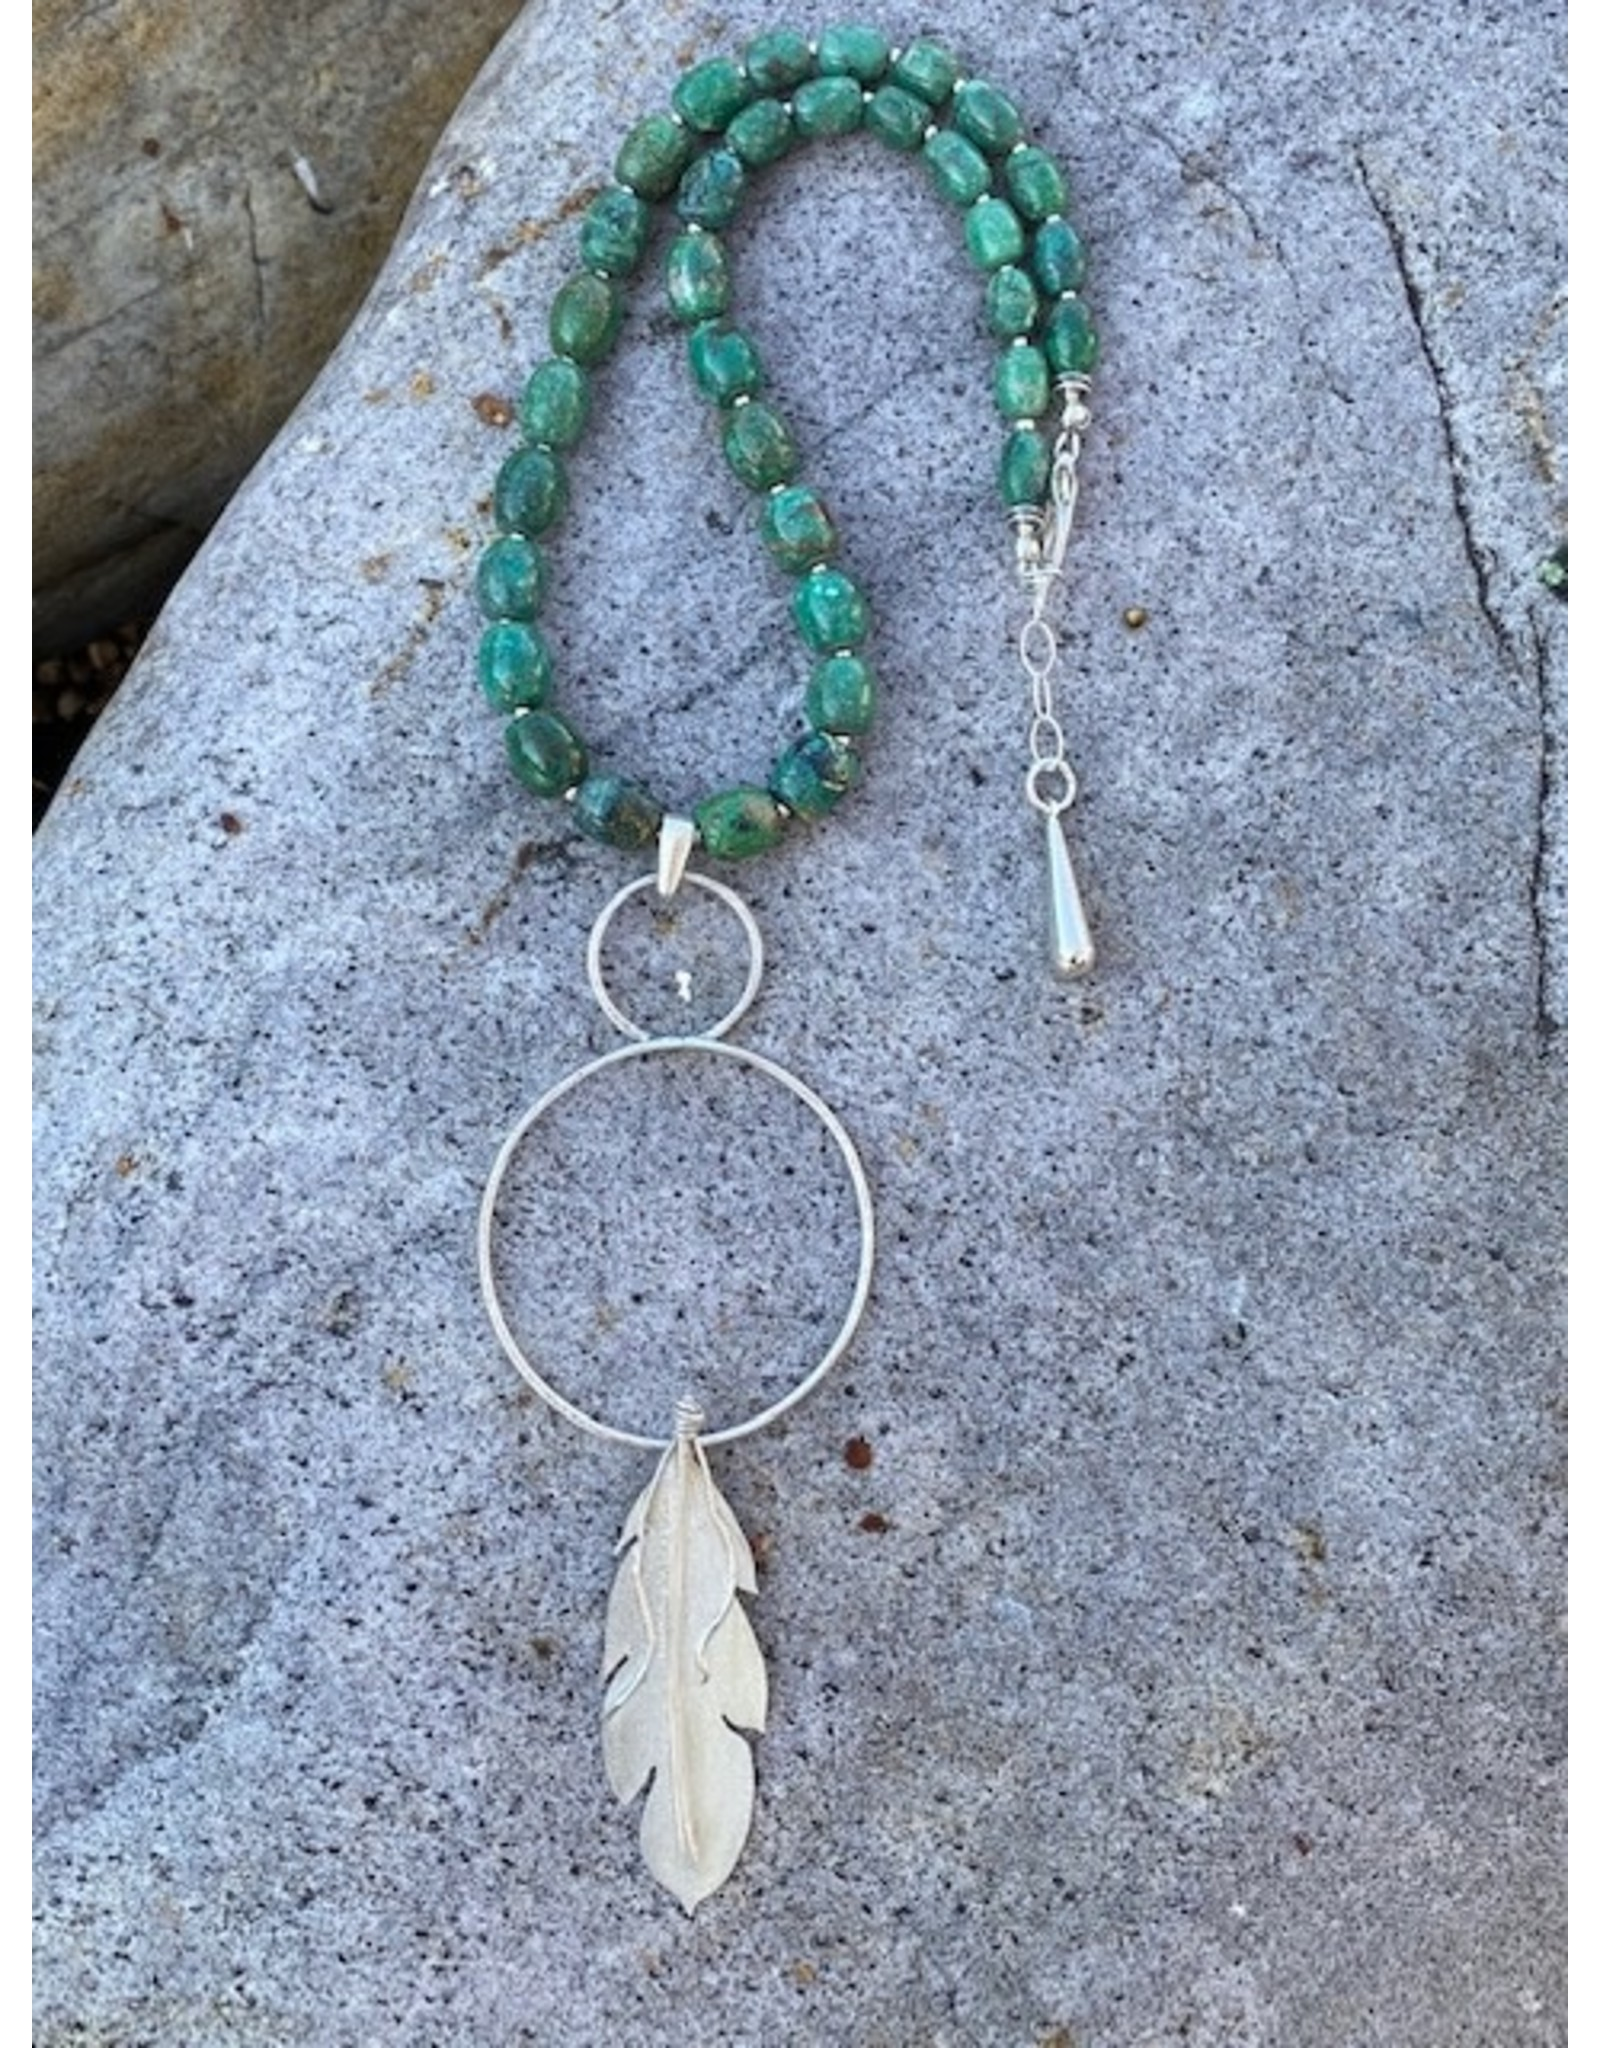 Annette Colby - Jeweler Turquoise Sterling Circle Feather Necklace by Annette Colby